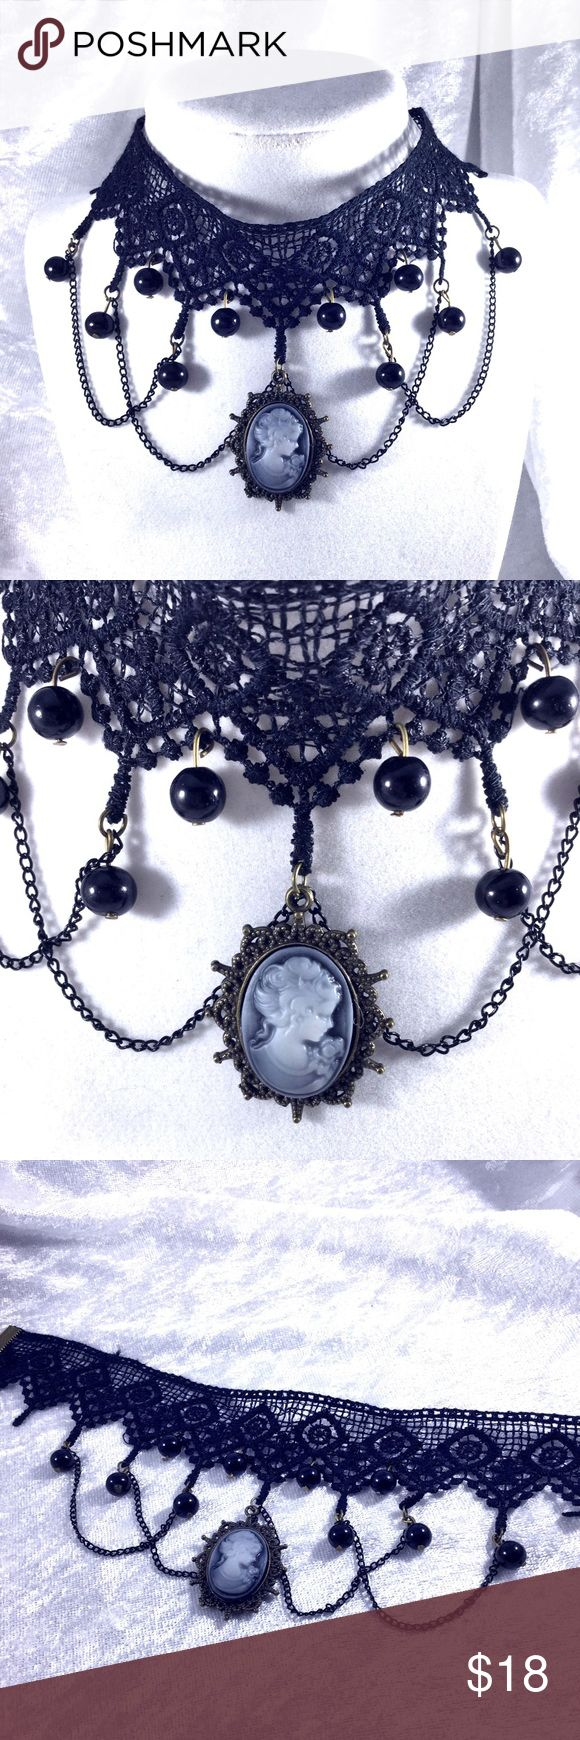 "Gothic Lace & Cameo Statement Choker Necklace Lace, chain, bed and black and white cameo gothic retro Victorian punk, steampunk, choker.   14.5"" adjustable. Costume jewelry. Lace is a delicate lace. Save the most with bundles. I offer 25% off on bundles of 2+ items. I accept reasonable offers. No trades. I only do business on Poshmark. Boutique Jewelry Necklaces"